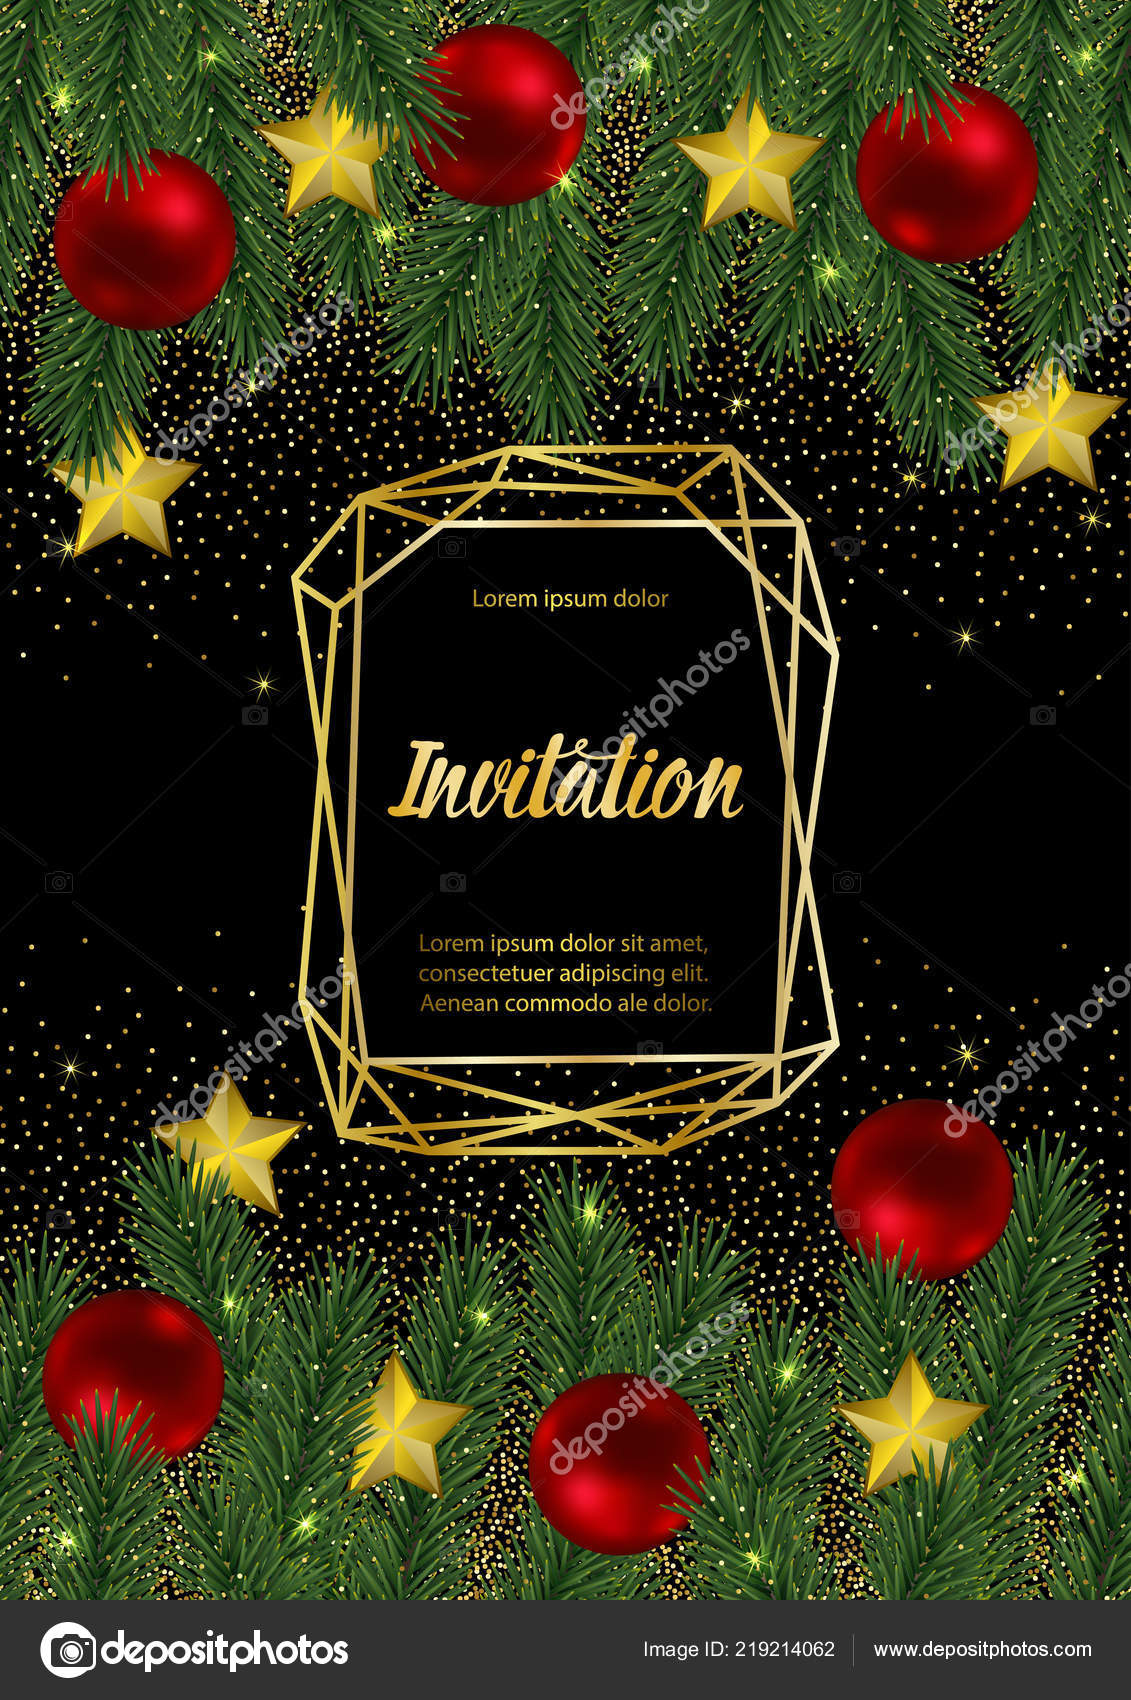 merry christmas and happy new year invitation card with gold geometric frame on black background template with fir tree template for greeting